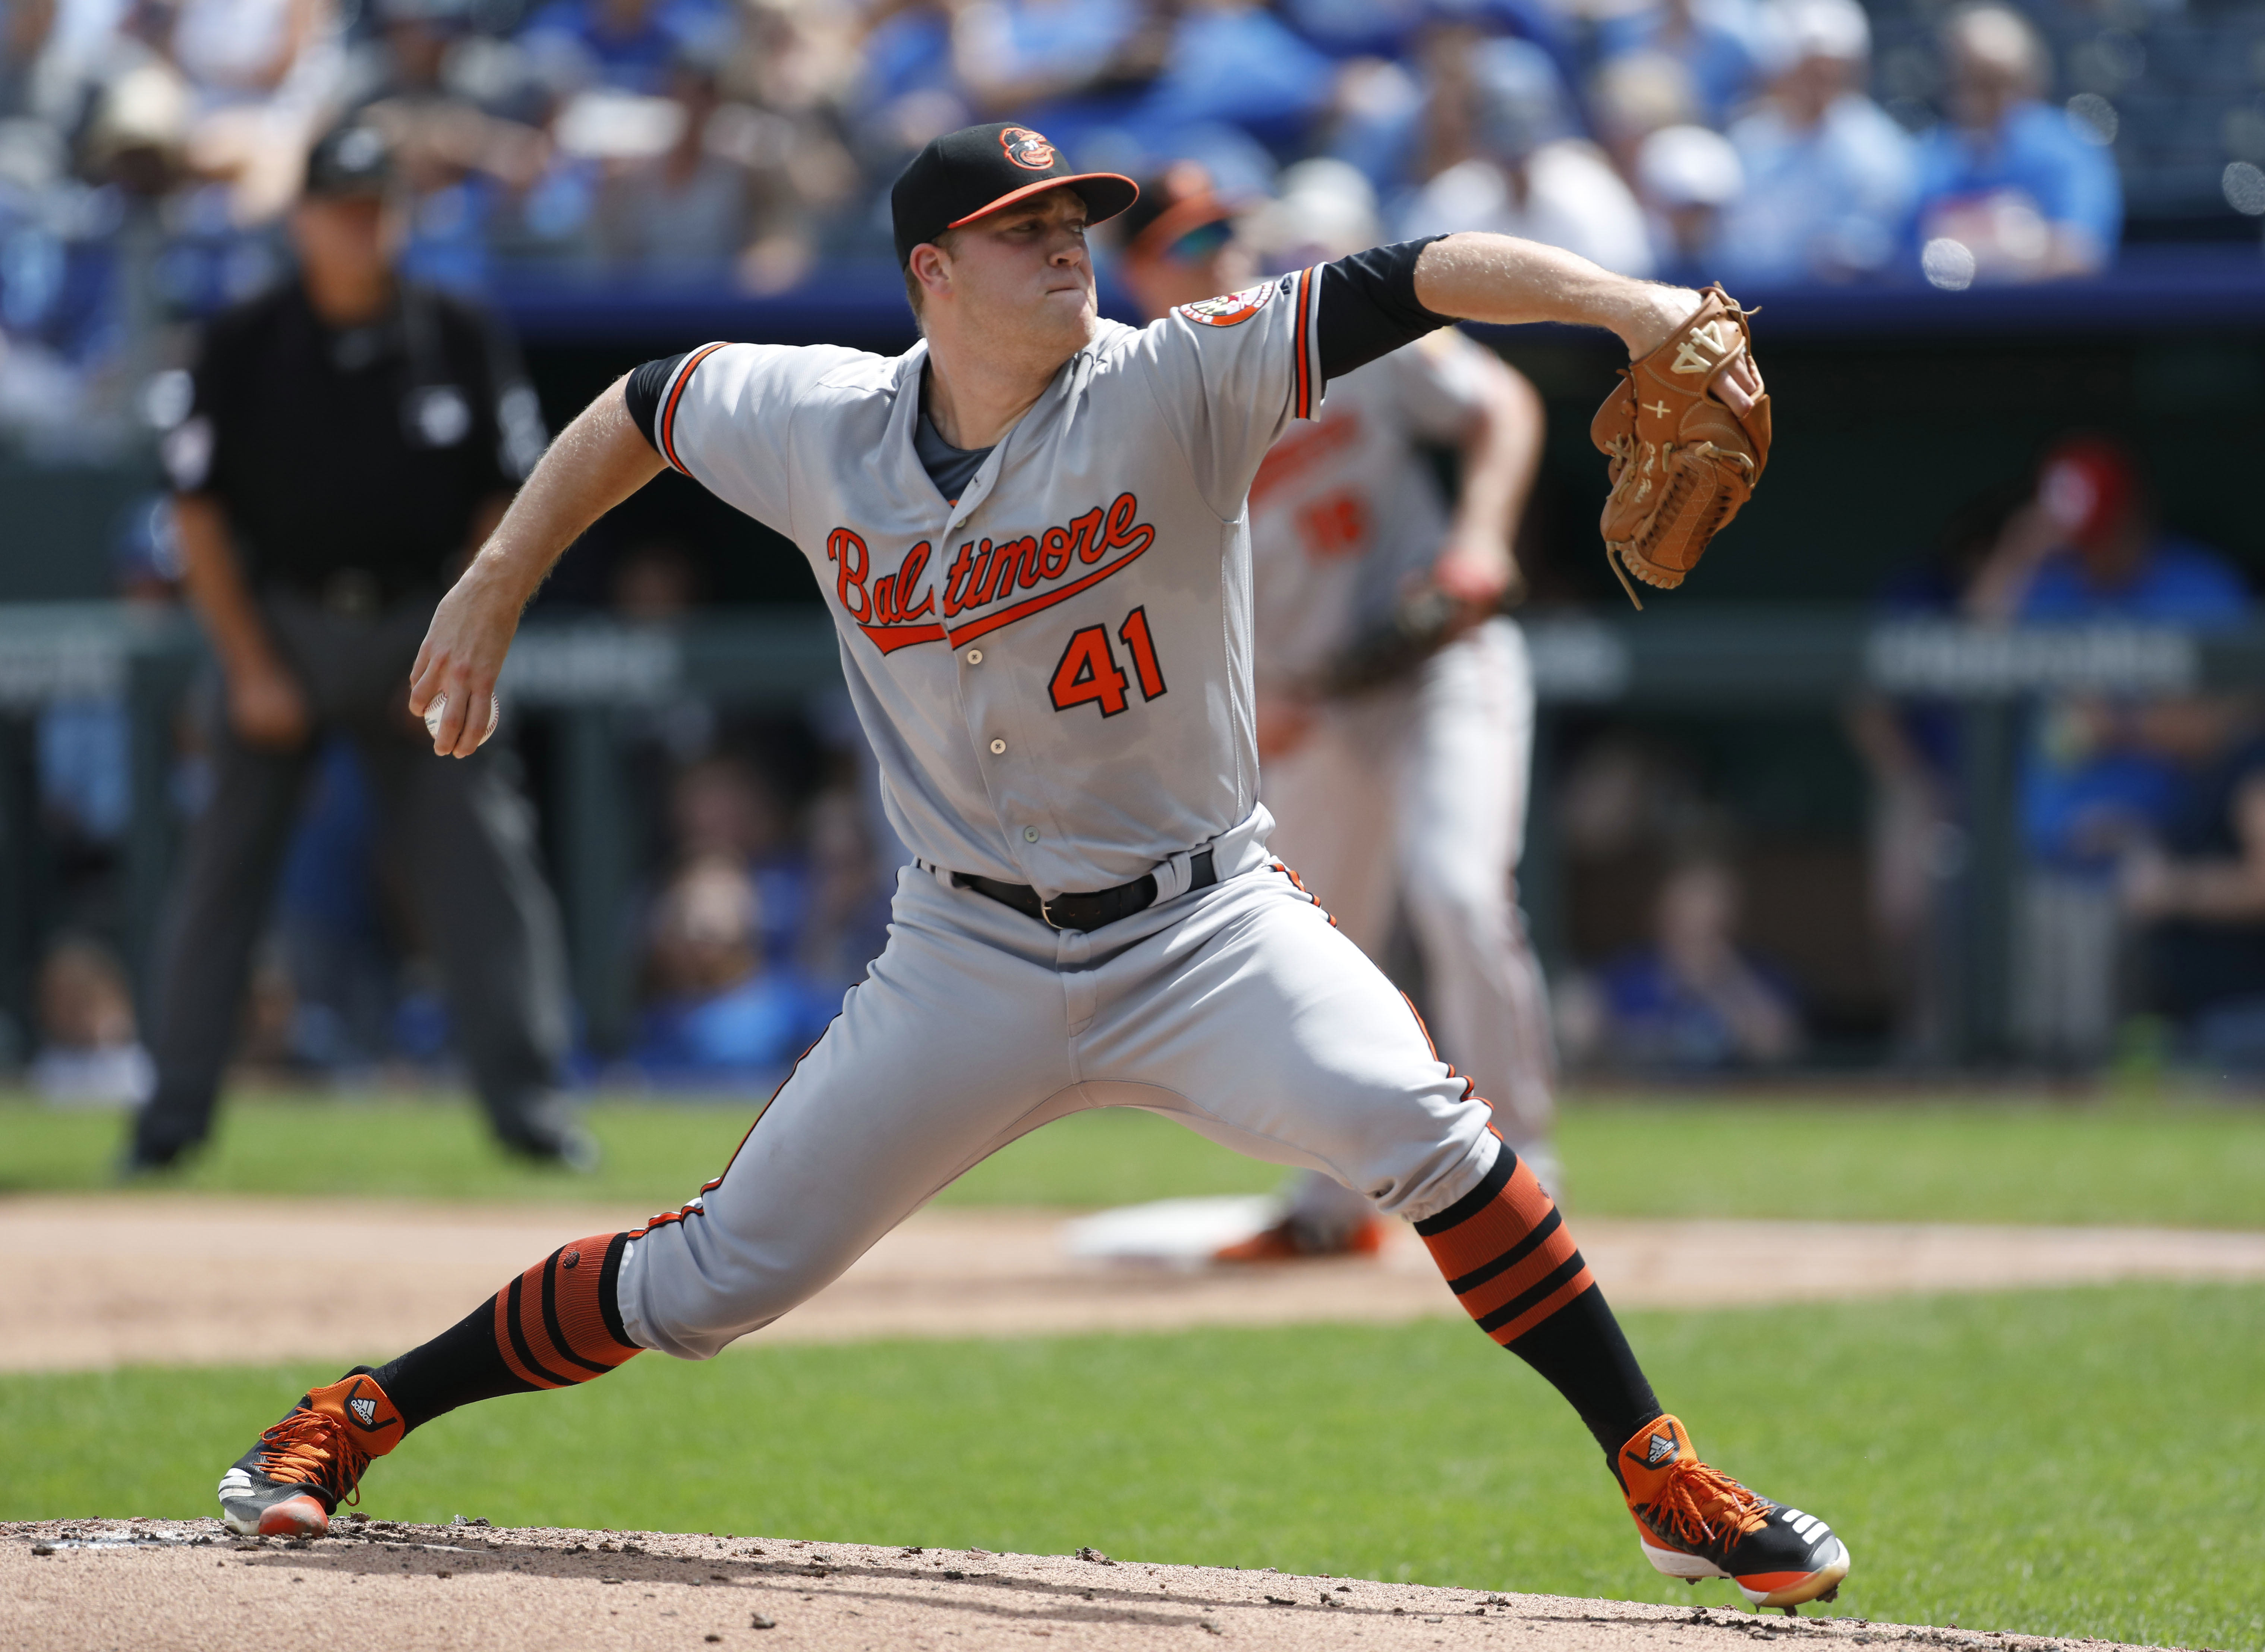 Orioles pitcher Hess hit in eye playing catch with football